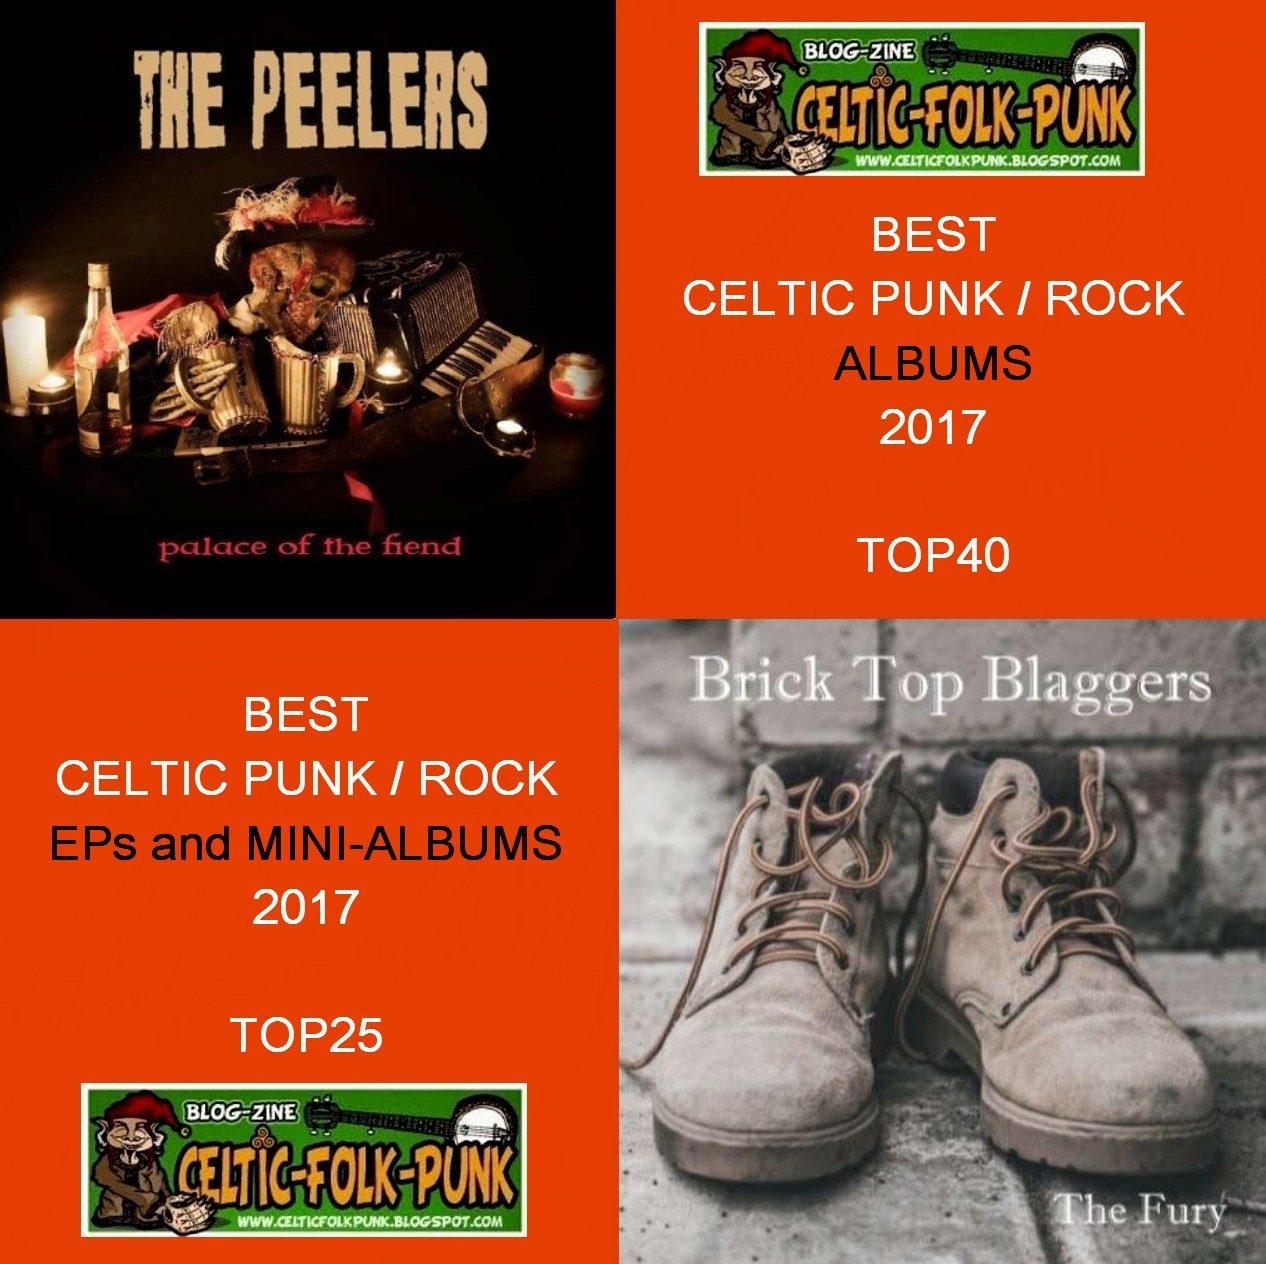 2017-12-22 THE BEST OF 2017 CELTIC PUNK / ROCK ALBUMS AND